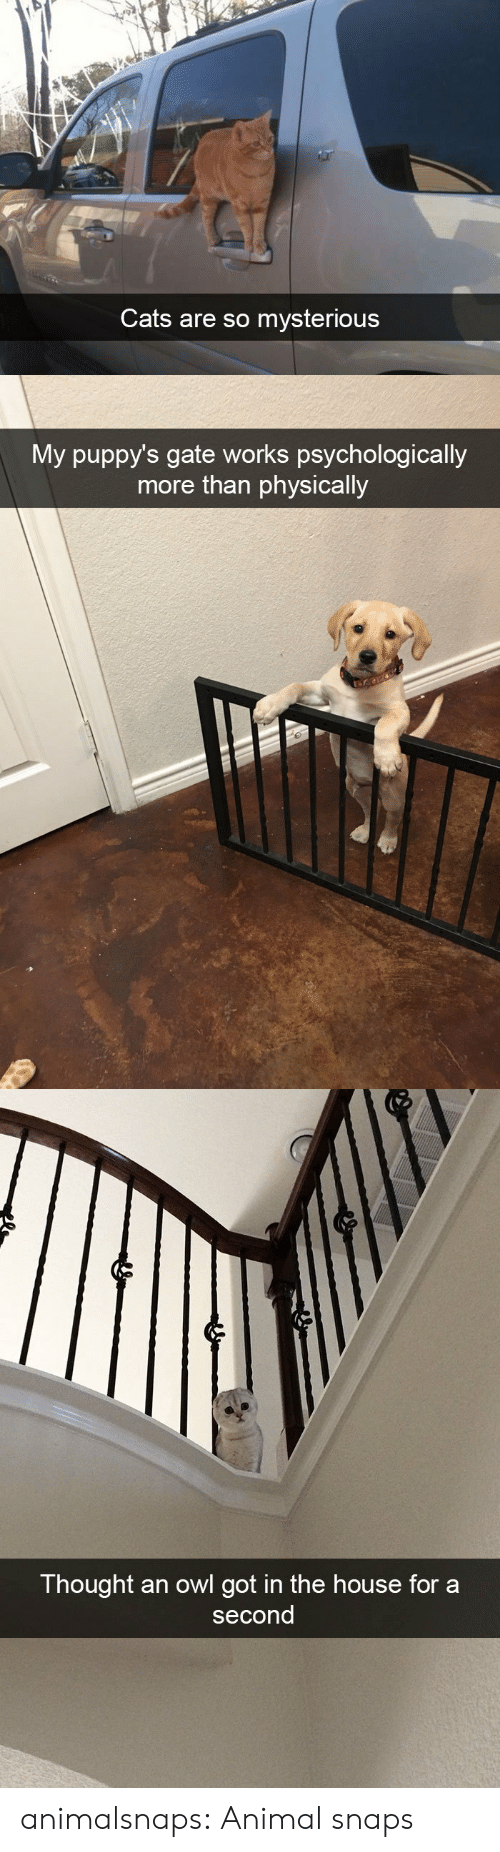 Cats, Tumblr, and Animal: Cats are so mysterious   My puppy's gate works psychologically  more than physically   Thought an owl got in the house for a  second animalsnaps:  Animal snaps